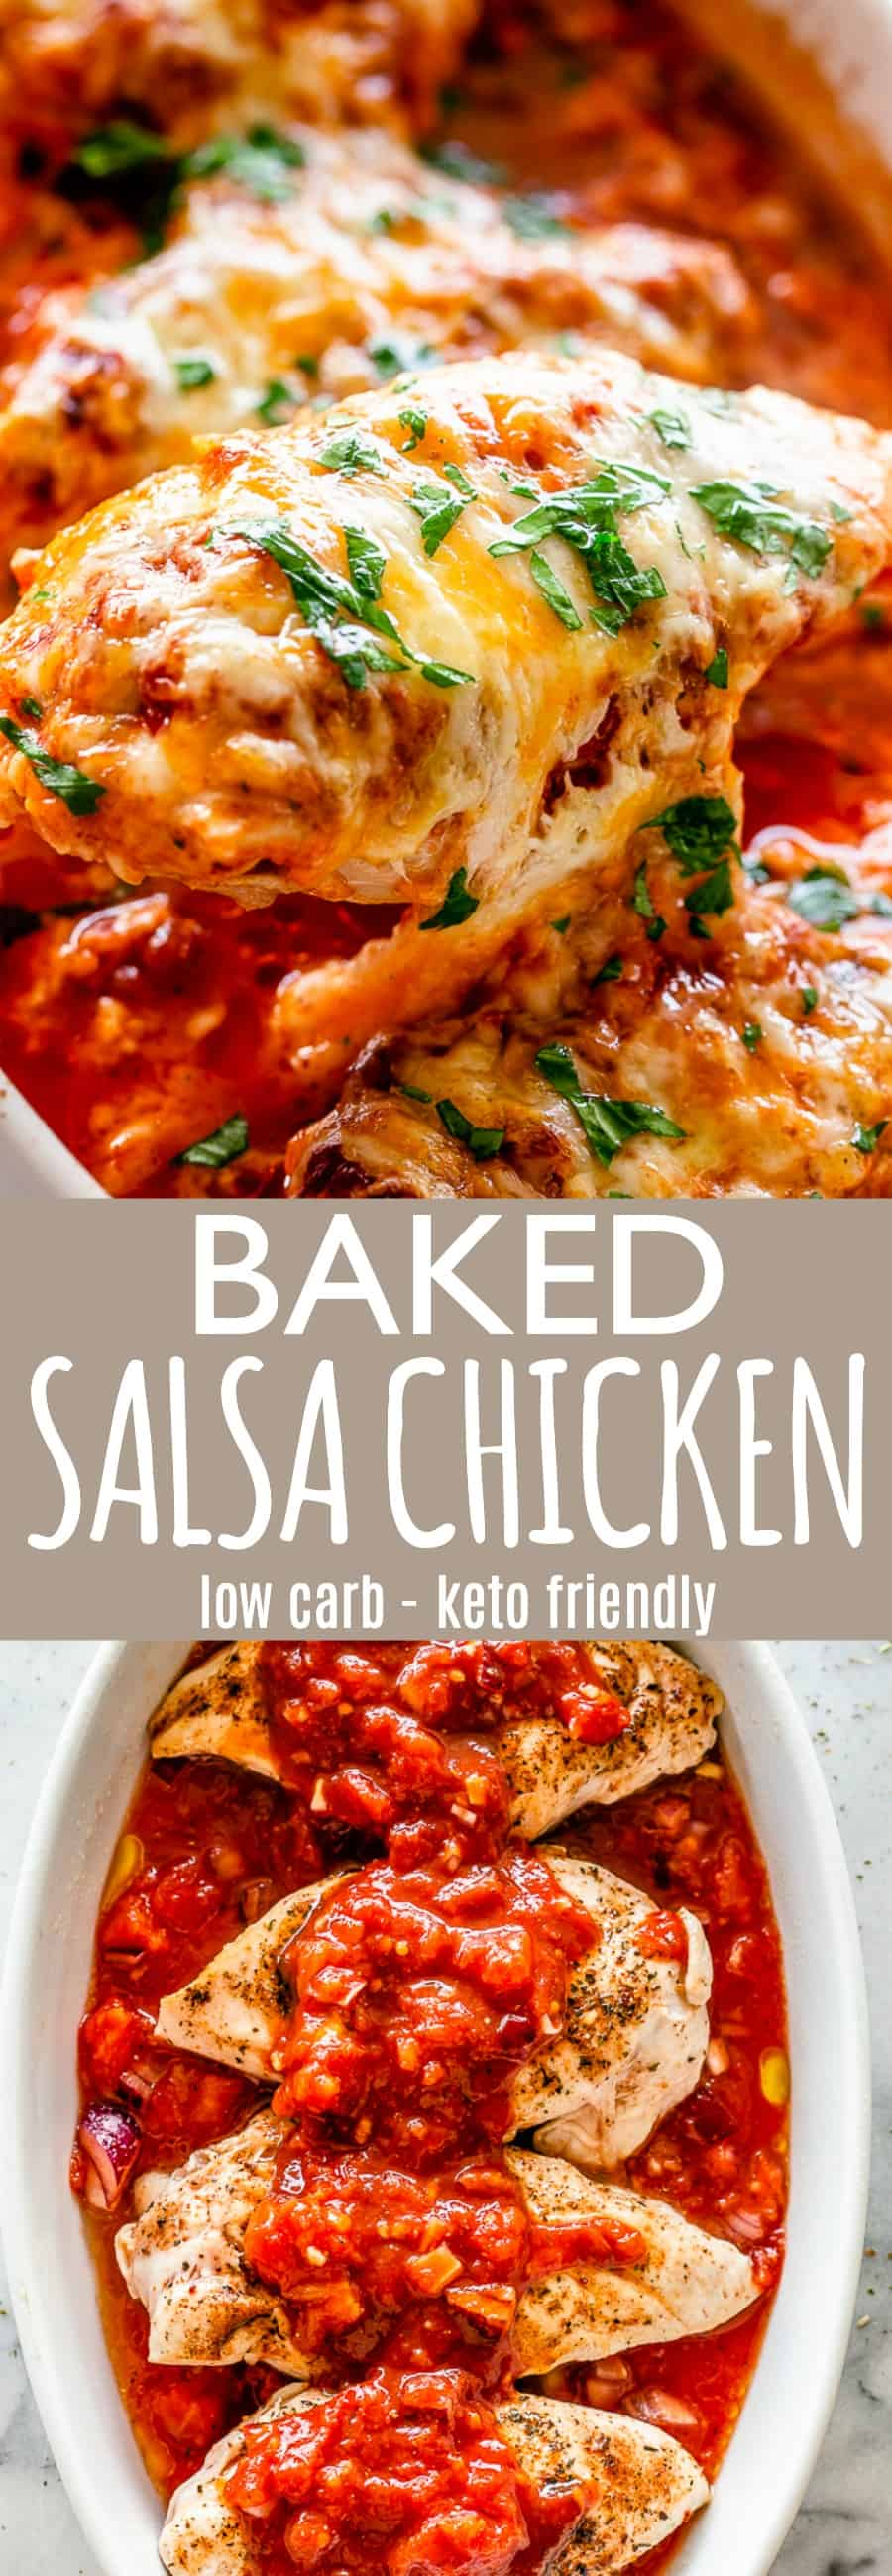 baked salsa chicken pin image